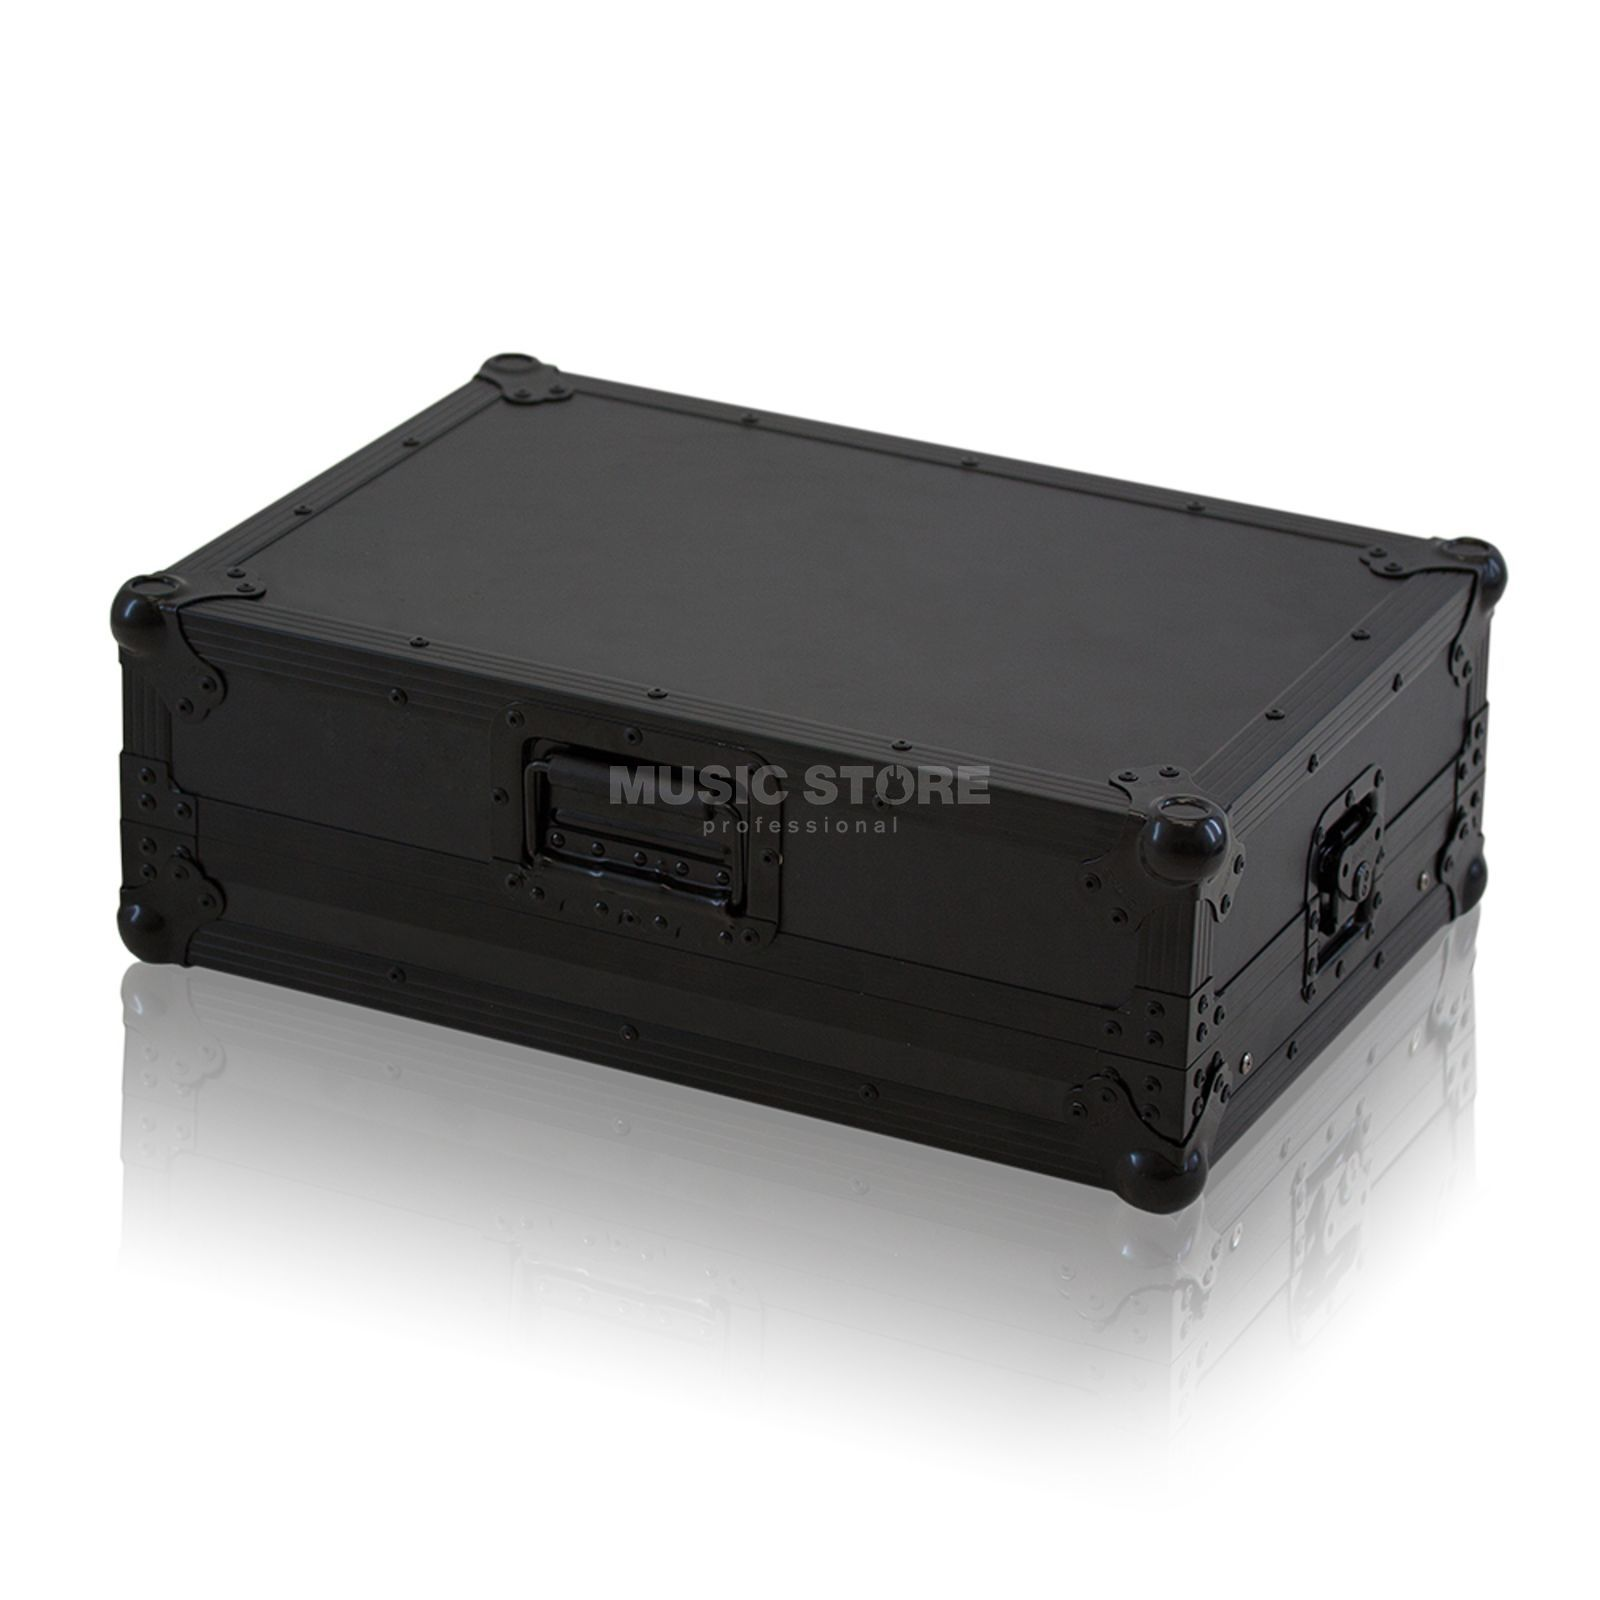 Zomo P-DDJ-SB PLUS NSE Case for 1x DDJ-SB + Laptop Product Image